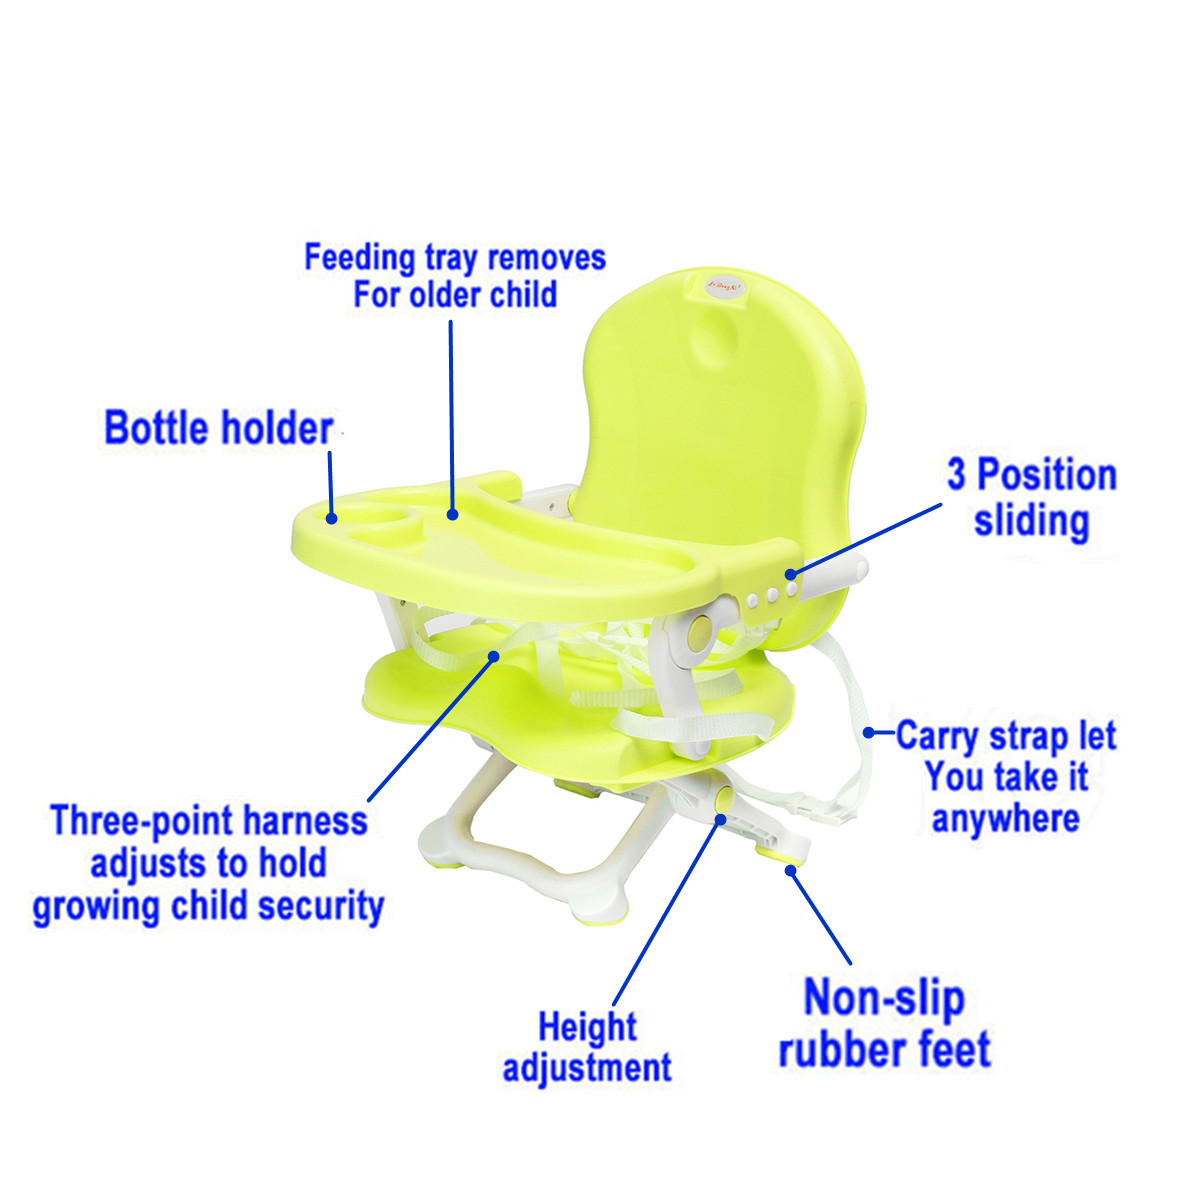 Feeding Chair Foldable Baby Seat Kids For Baby Child Portable Baby Safety Eat Desk Booster Seat Lunch Harness Kid Chair portable baby high chair booster seat kid infant baby dining lunch feeding chair plastic chair folding seggiolone portatile baby